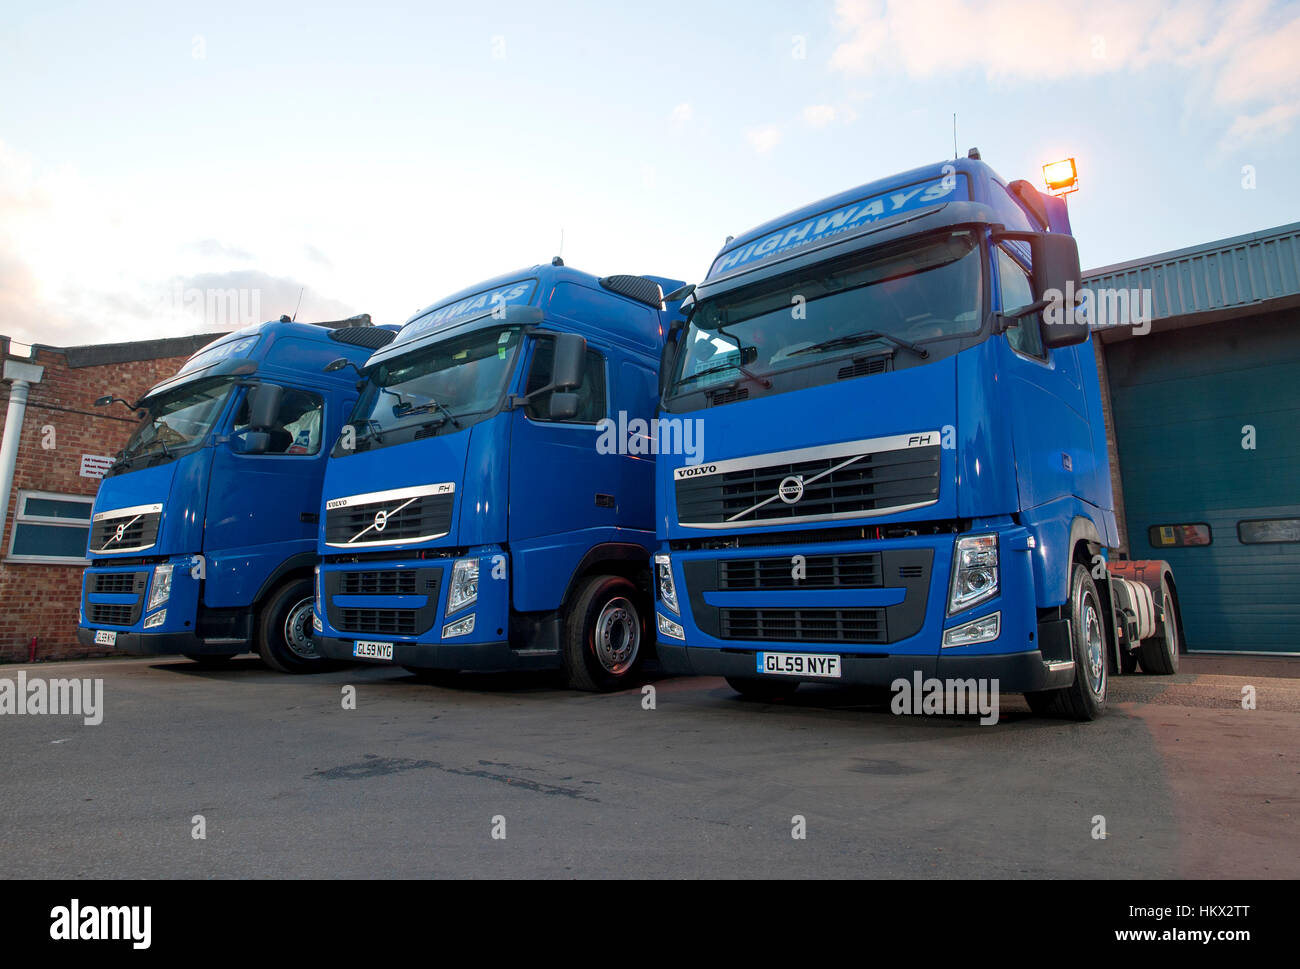 2009/2010 Volvo FH HGV truck tractor units - Stock Image